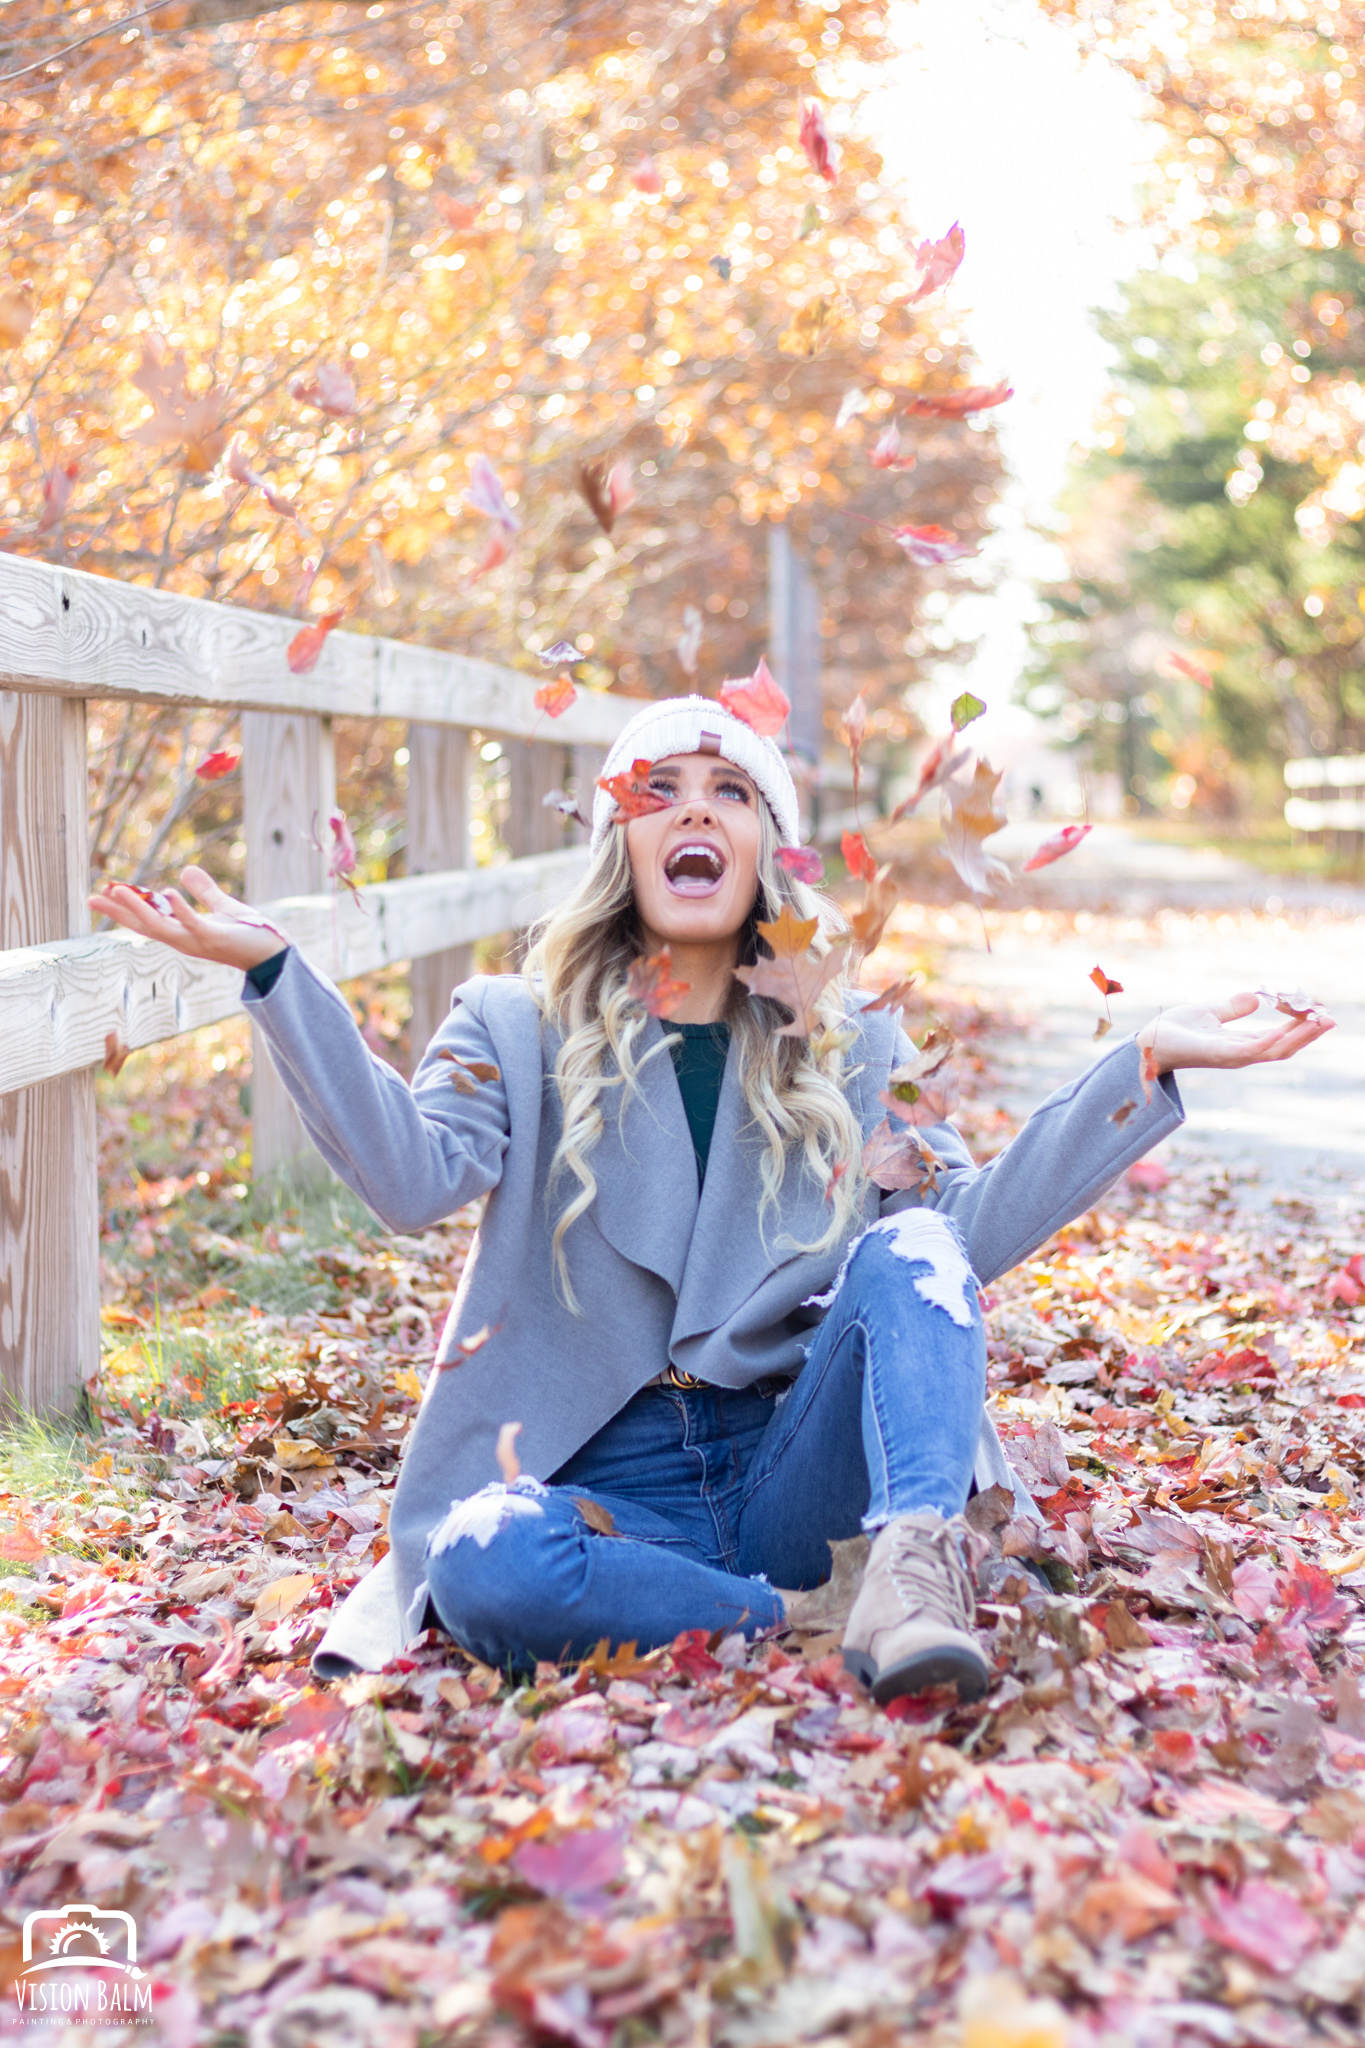 Professional fall portrait photography of model wearing a knit hat and jacket throwing leaves in the air photographed by Vision Balm in Charleston, SC.